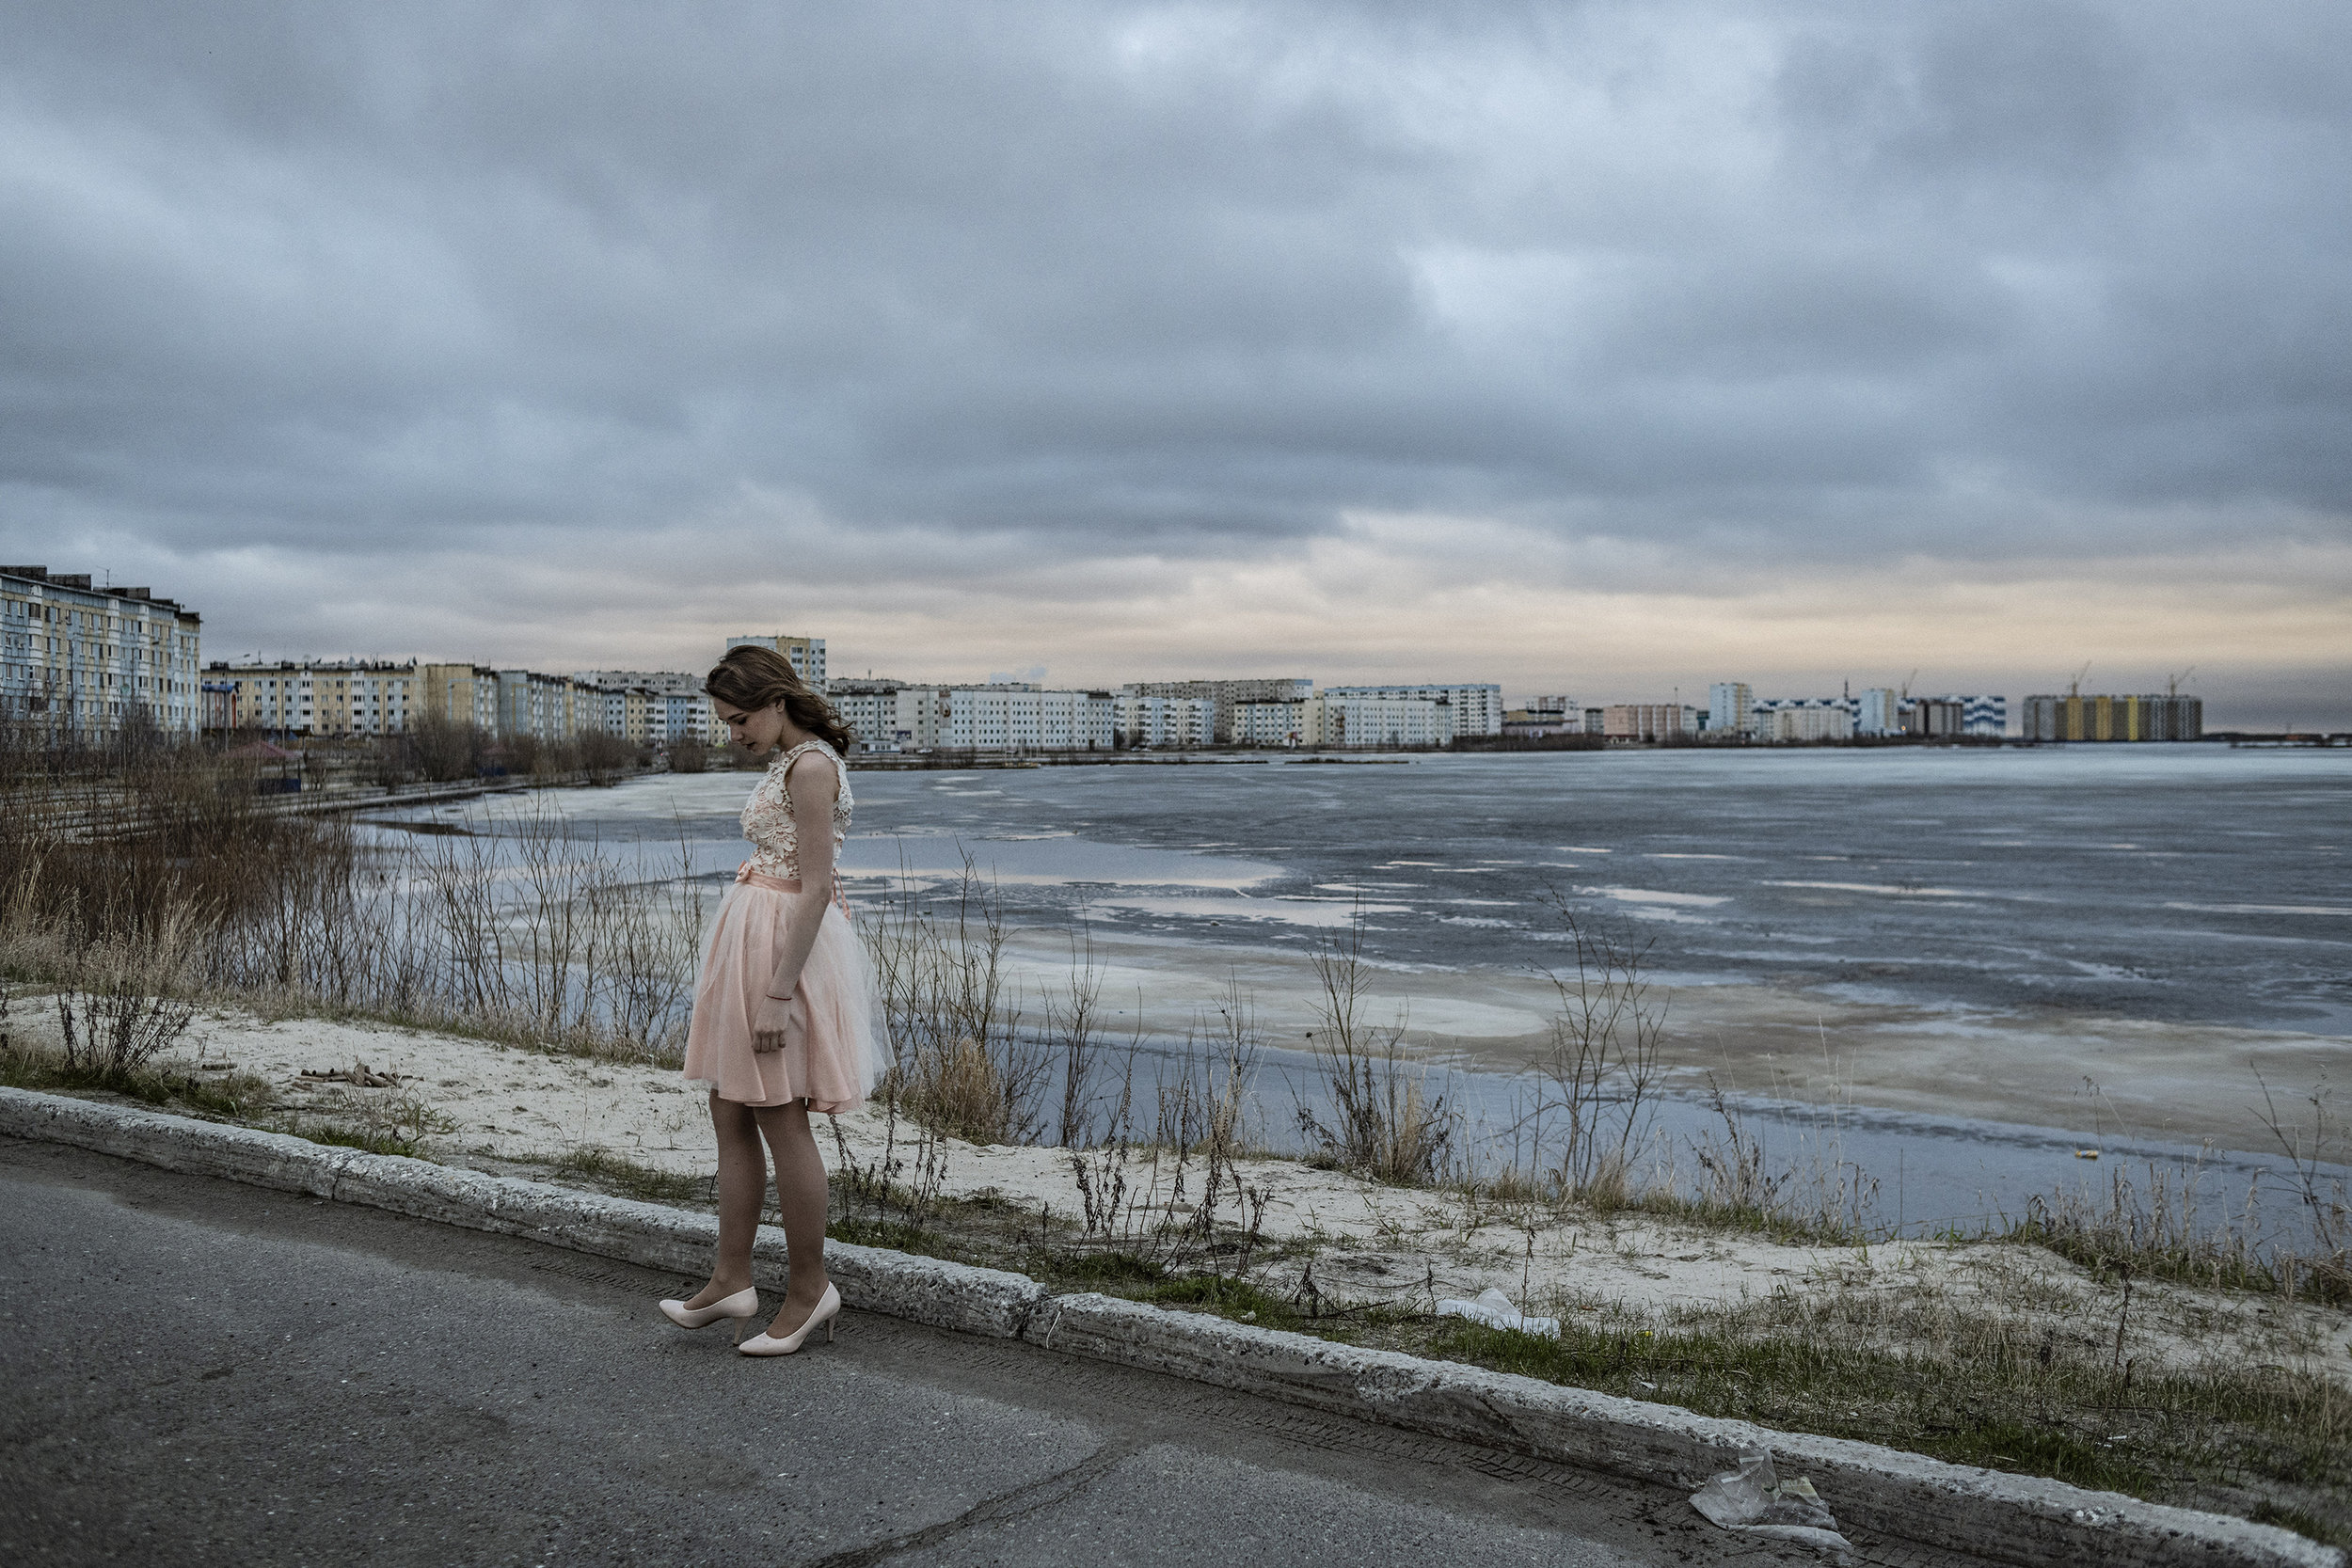 Russia, Yamal Peninsula, Nadym, June 2018